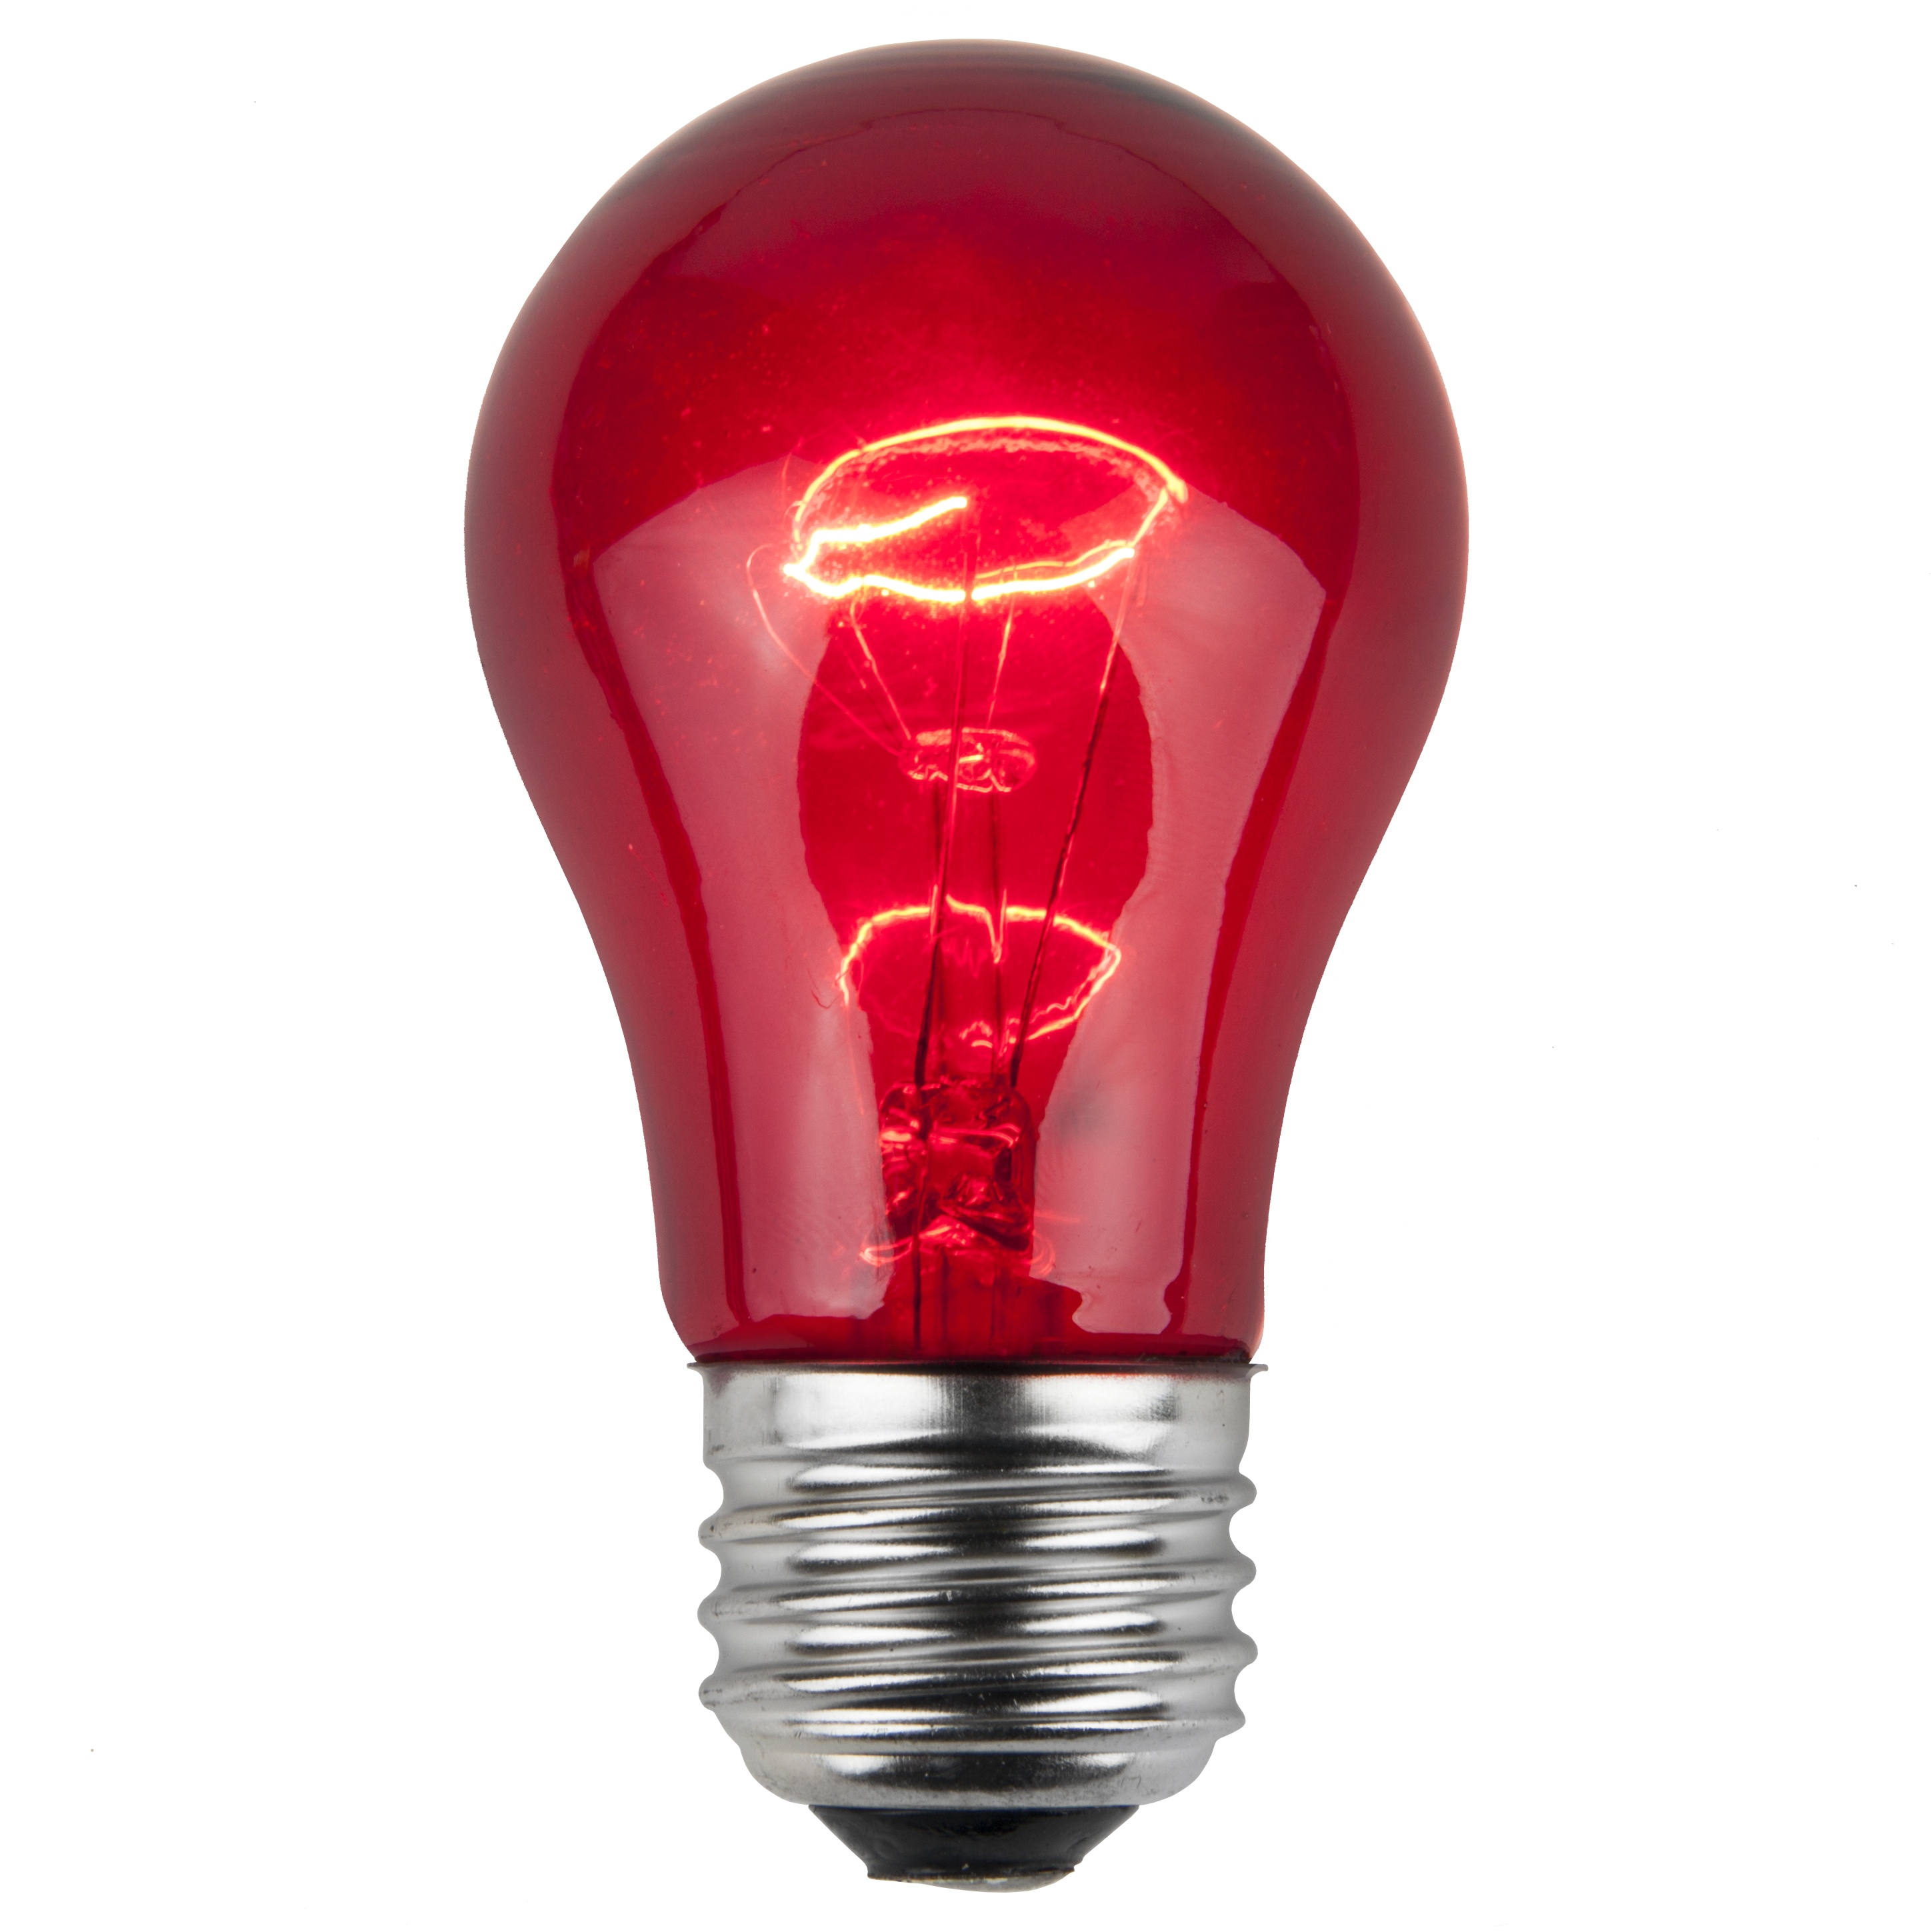 A15 Red Transparent Incandescent Incandescent Bulb